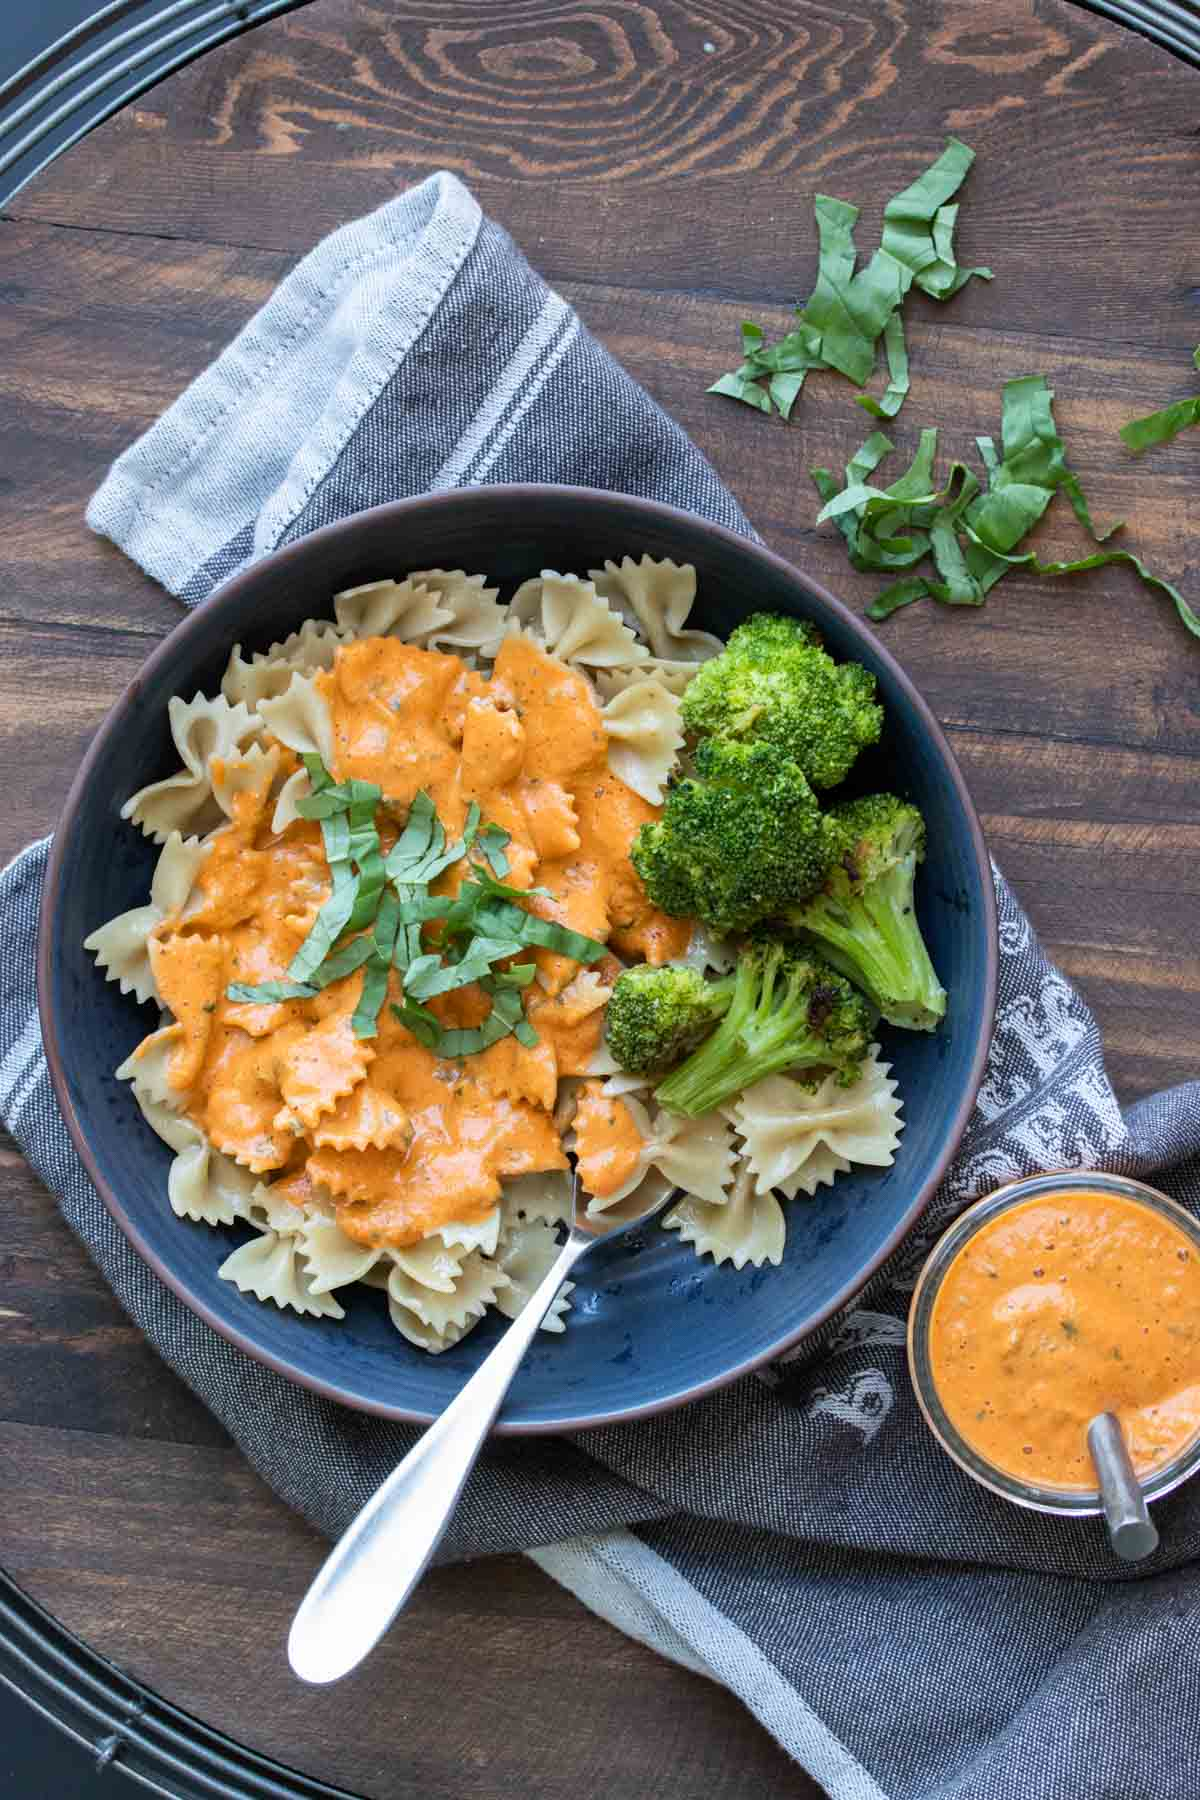 Dark blue plate with farfale pasta topped with roasted red pepper sauce and broccoli